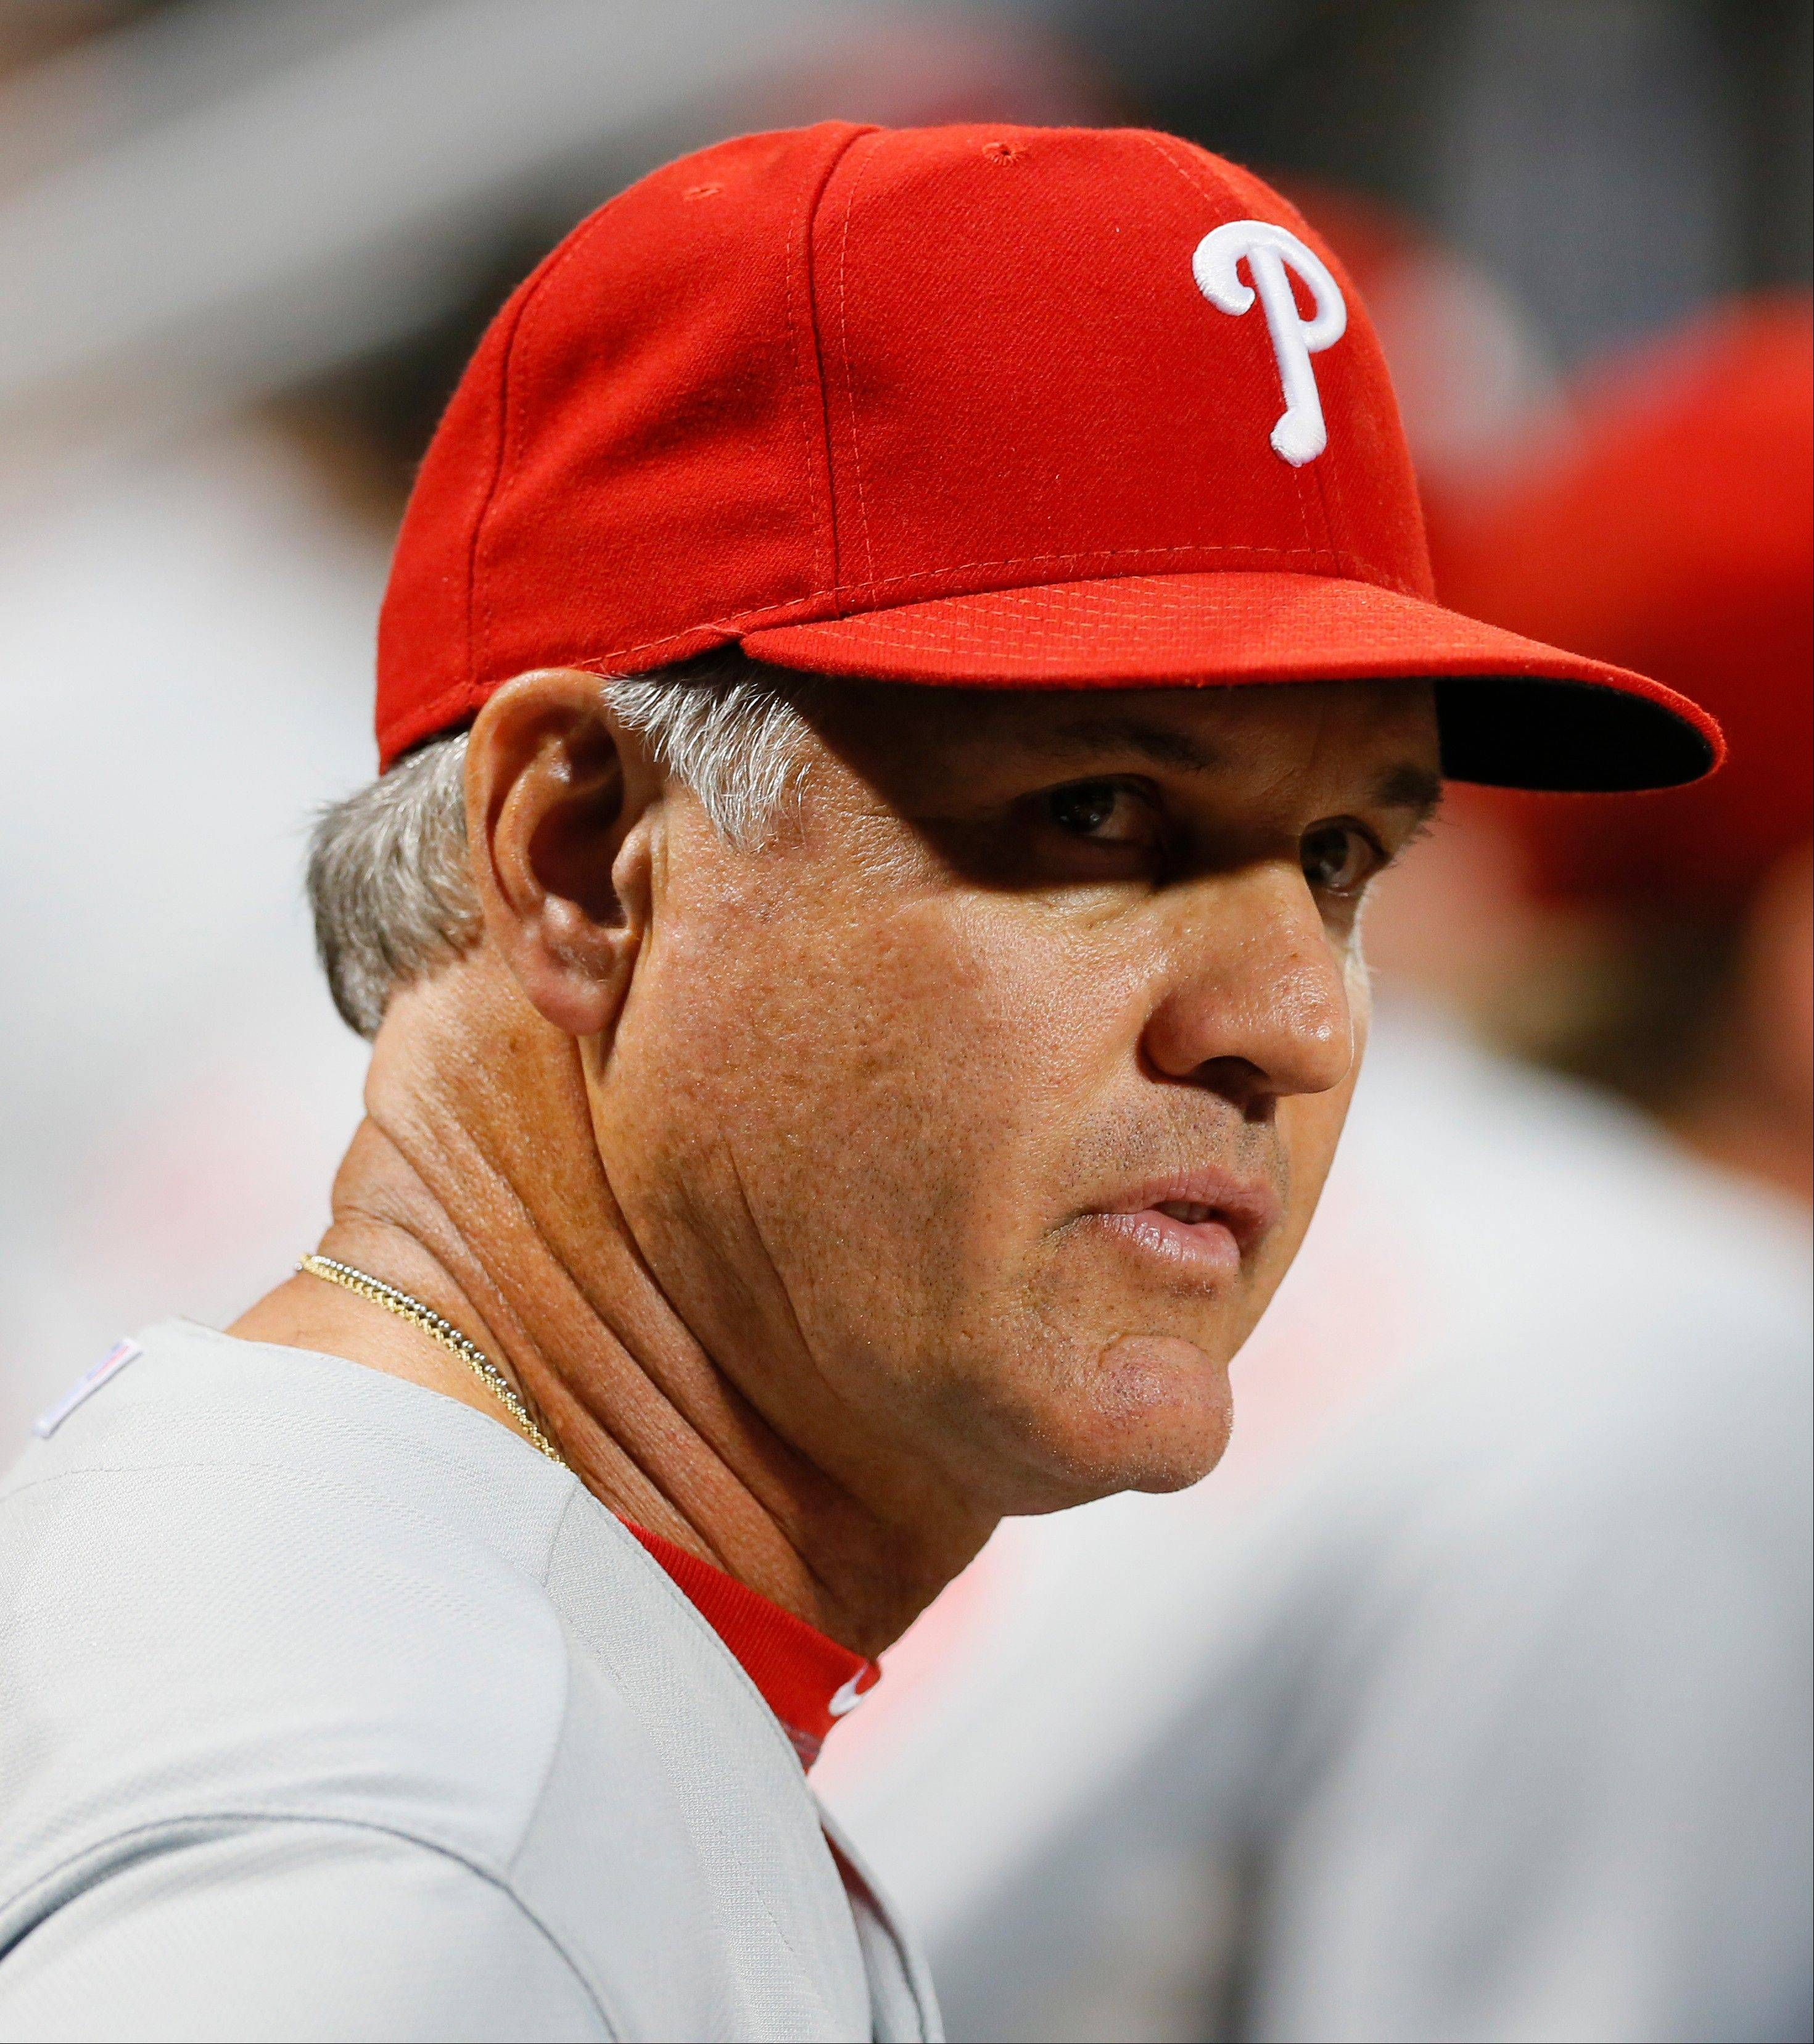 Ryne Sandberg, Cubs Hall of Famer and now Phillies interim manager, returns to Wrigley Field on Friday for the first time in uniform since retiring as a player in 1997.